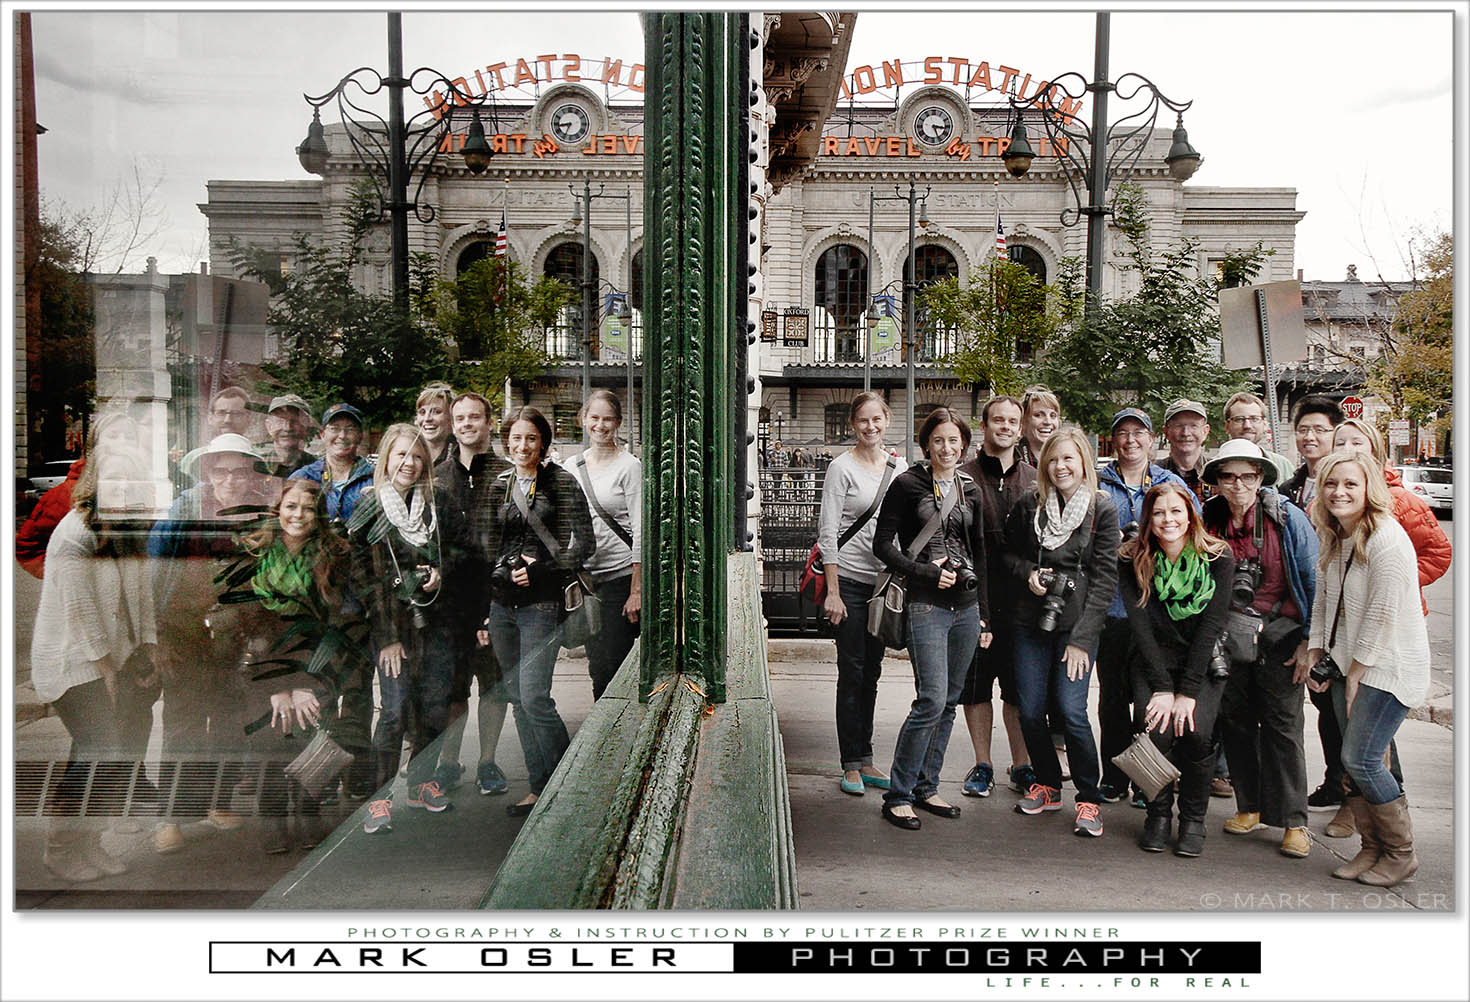 Students for Mark Osler's class on photo composition held Nov. 2, 2014 at Union Station in Denver, Colorado. (©Mark T. Osler. ALL RIGHTS RESERVED.)